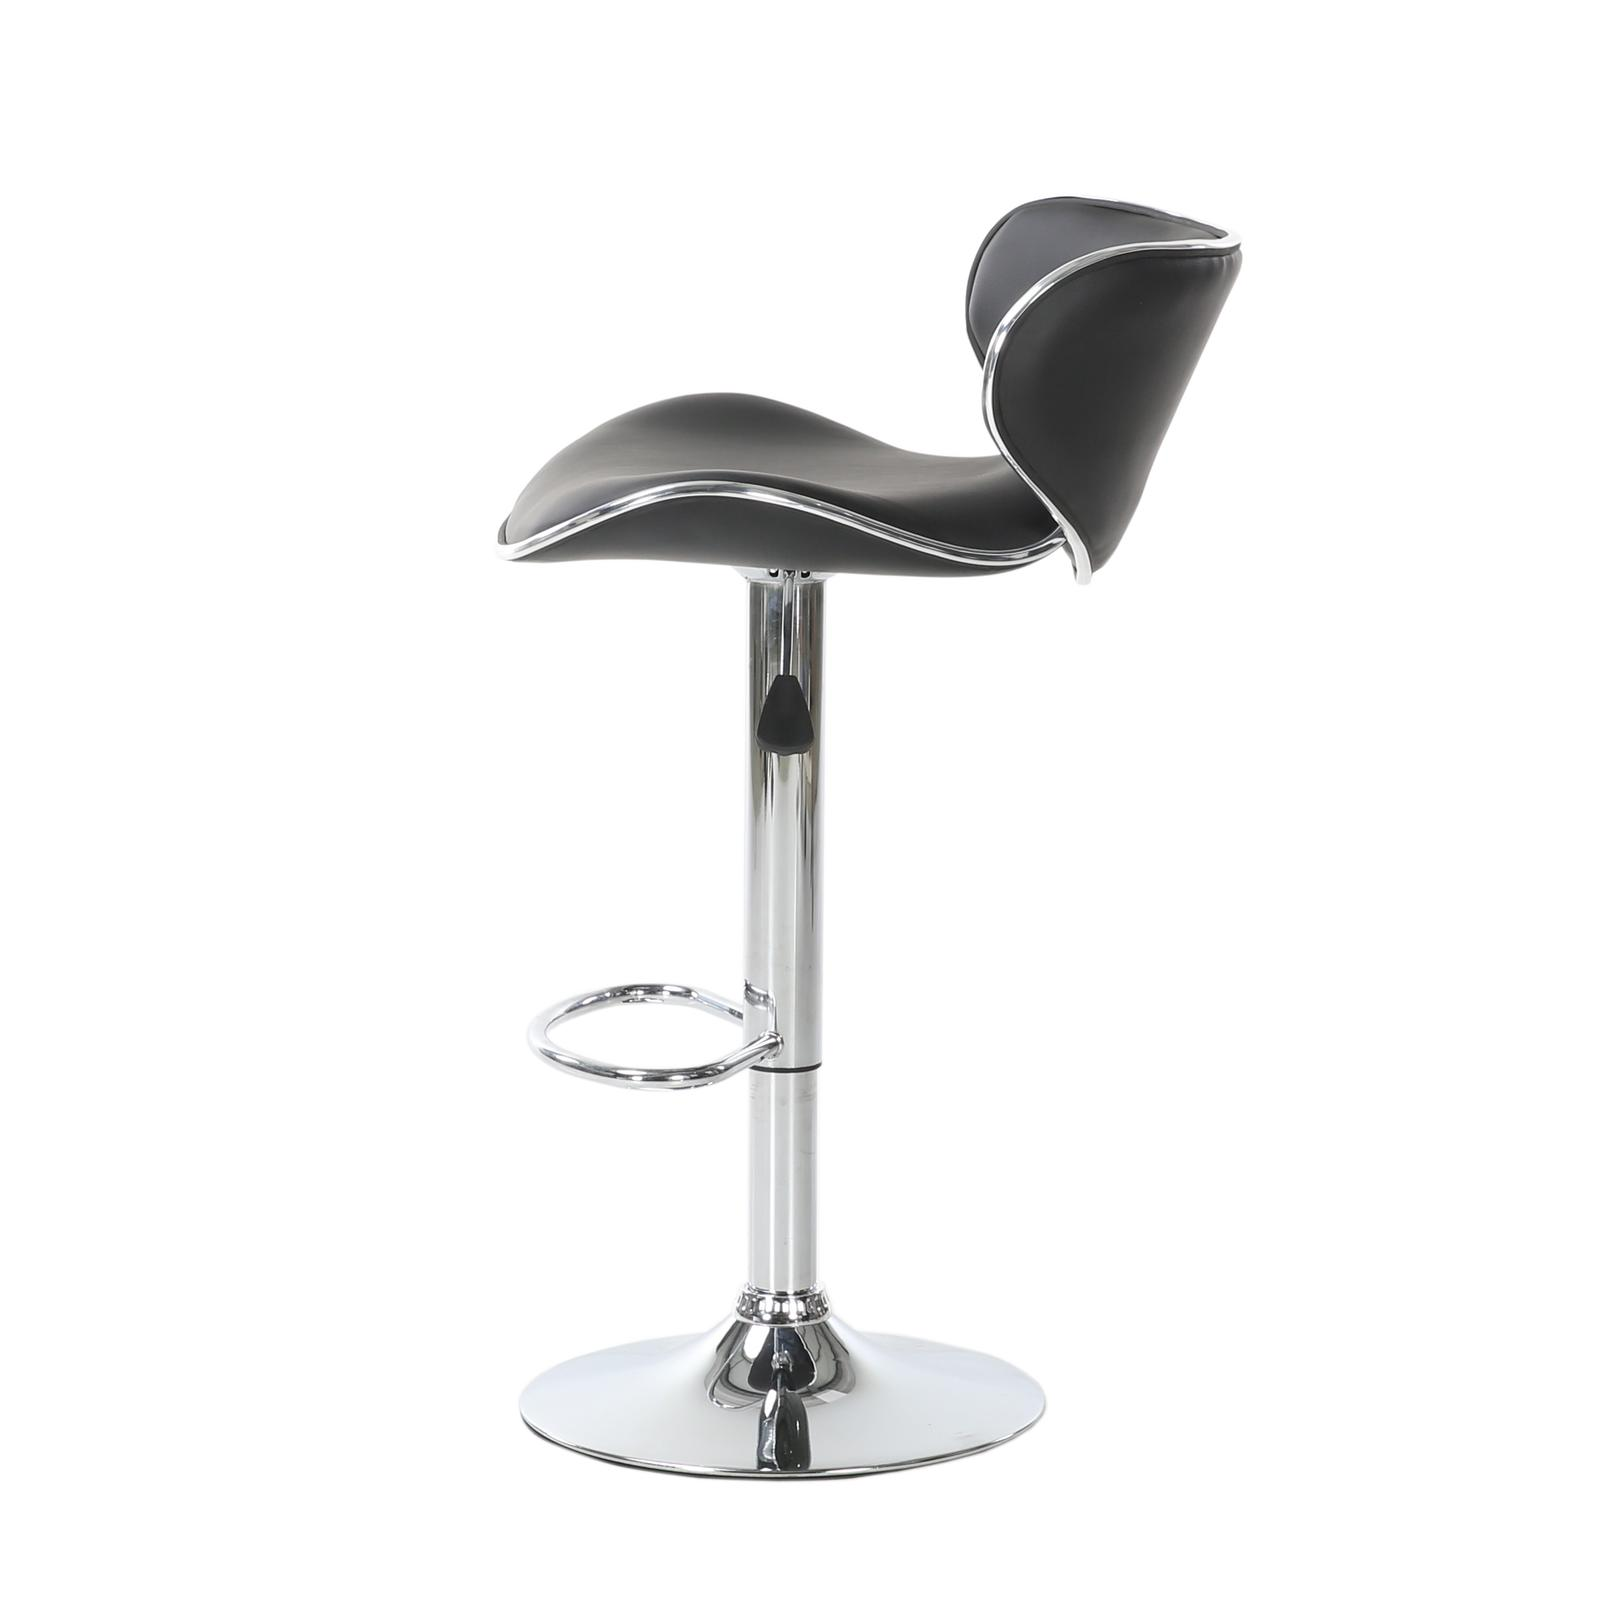 Set 2 Stools PU Leather Counter